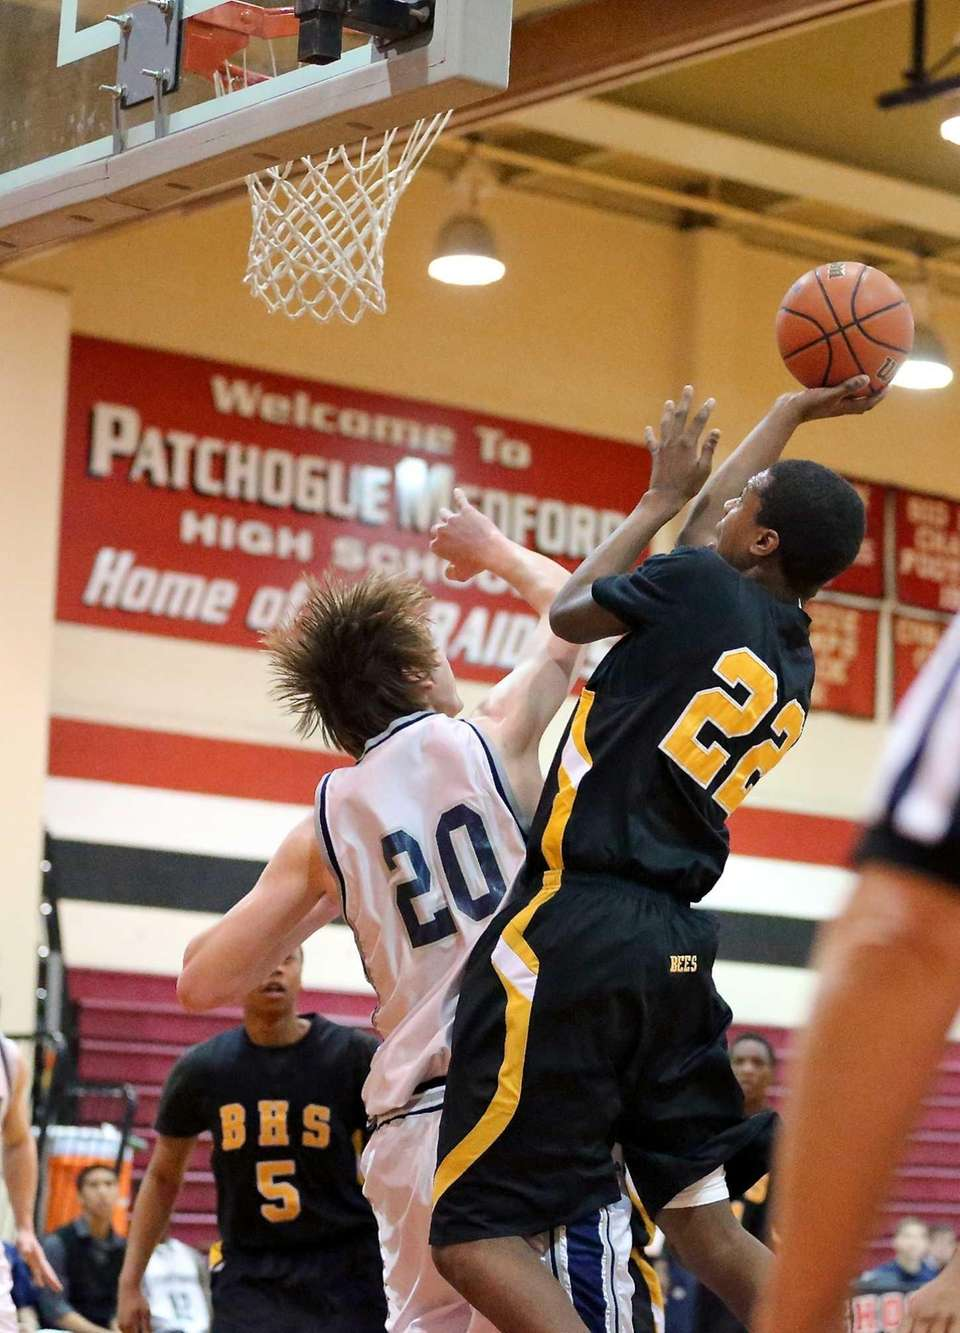 Bridgehampton's Jason Hopson puts up the fadeaway jumper